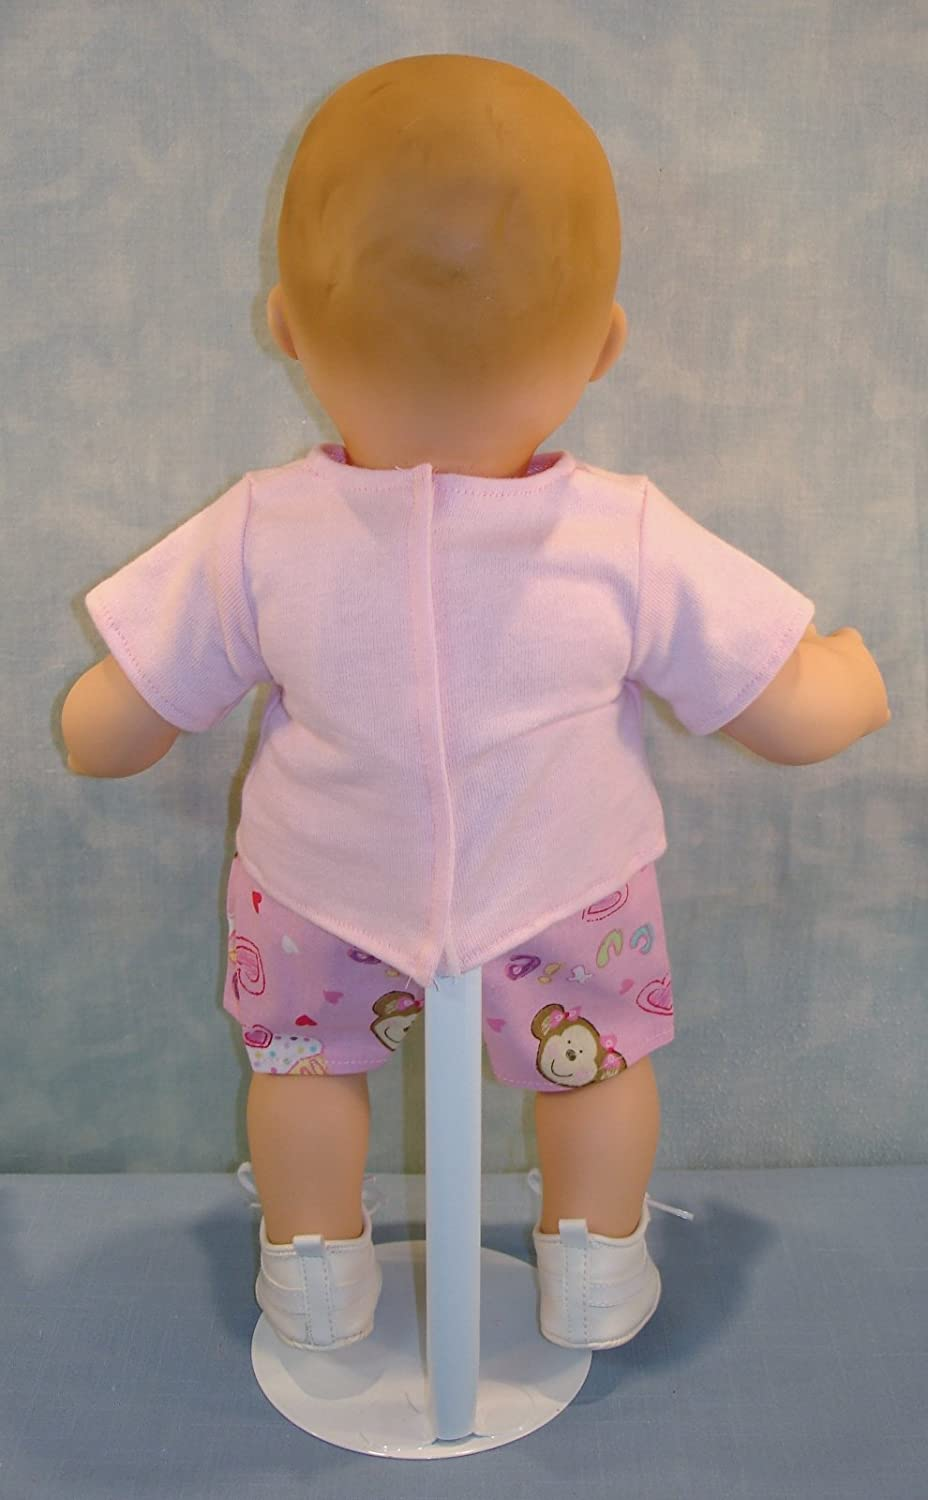 Monkey and Cupcakes Shorts Outfit handmade by Jane Ellen to fit 15 inch baby dolls 15 Inch Doll Clothes